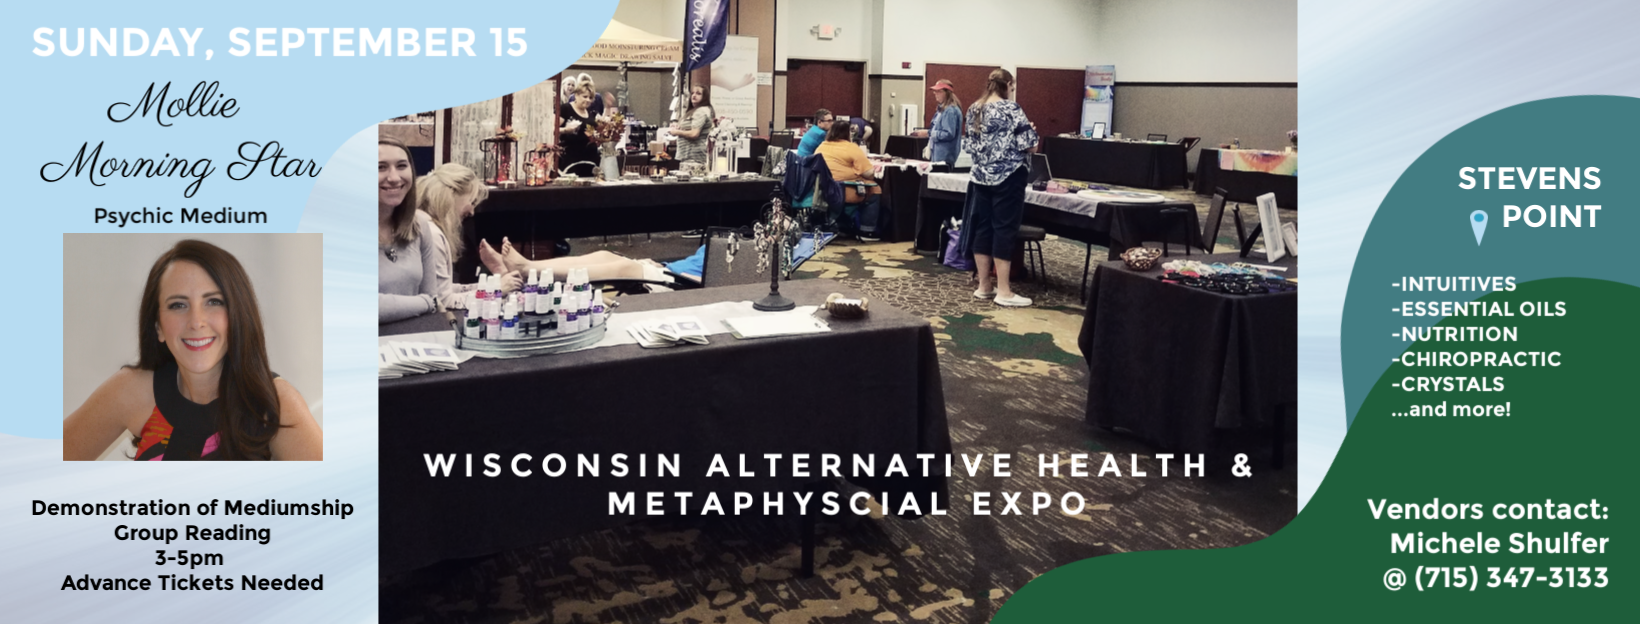 Wisconsin Alternative Health and Metaphysical Expo in Stevens Point, WI. Psychic Medium Mollie Morning Star